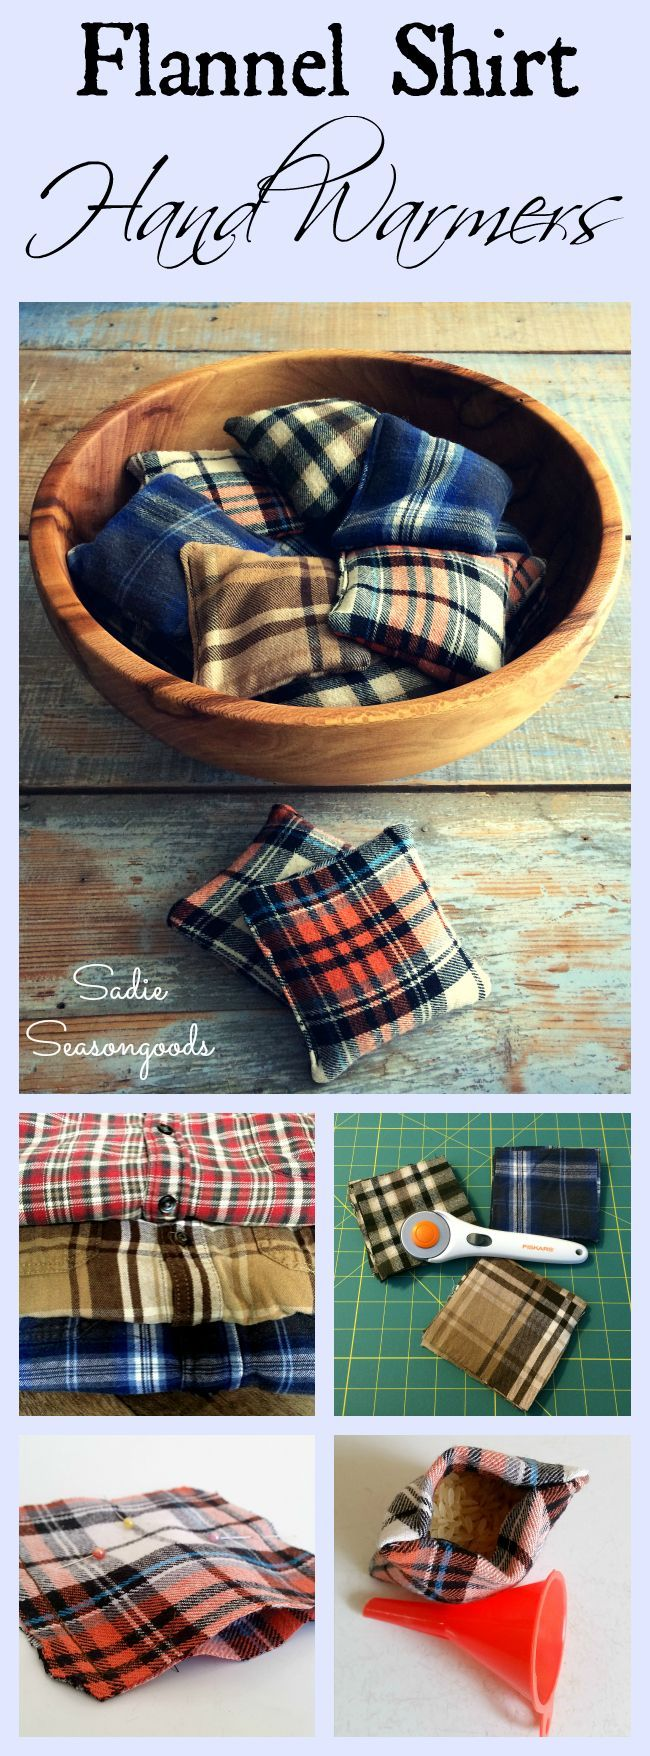 DIY Reusable Hand Warmers using Repurposed Flannel Shirts from the Thrift!Natsukashii